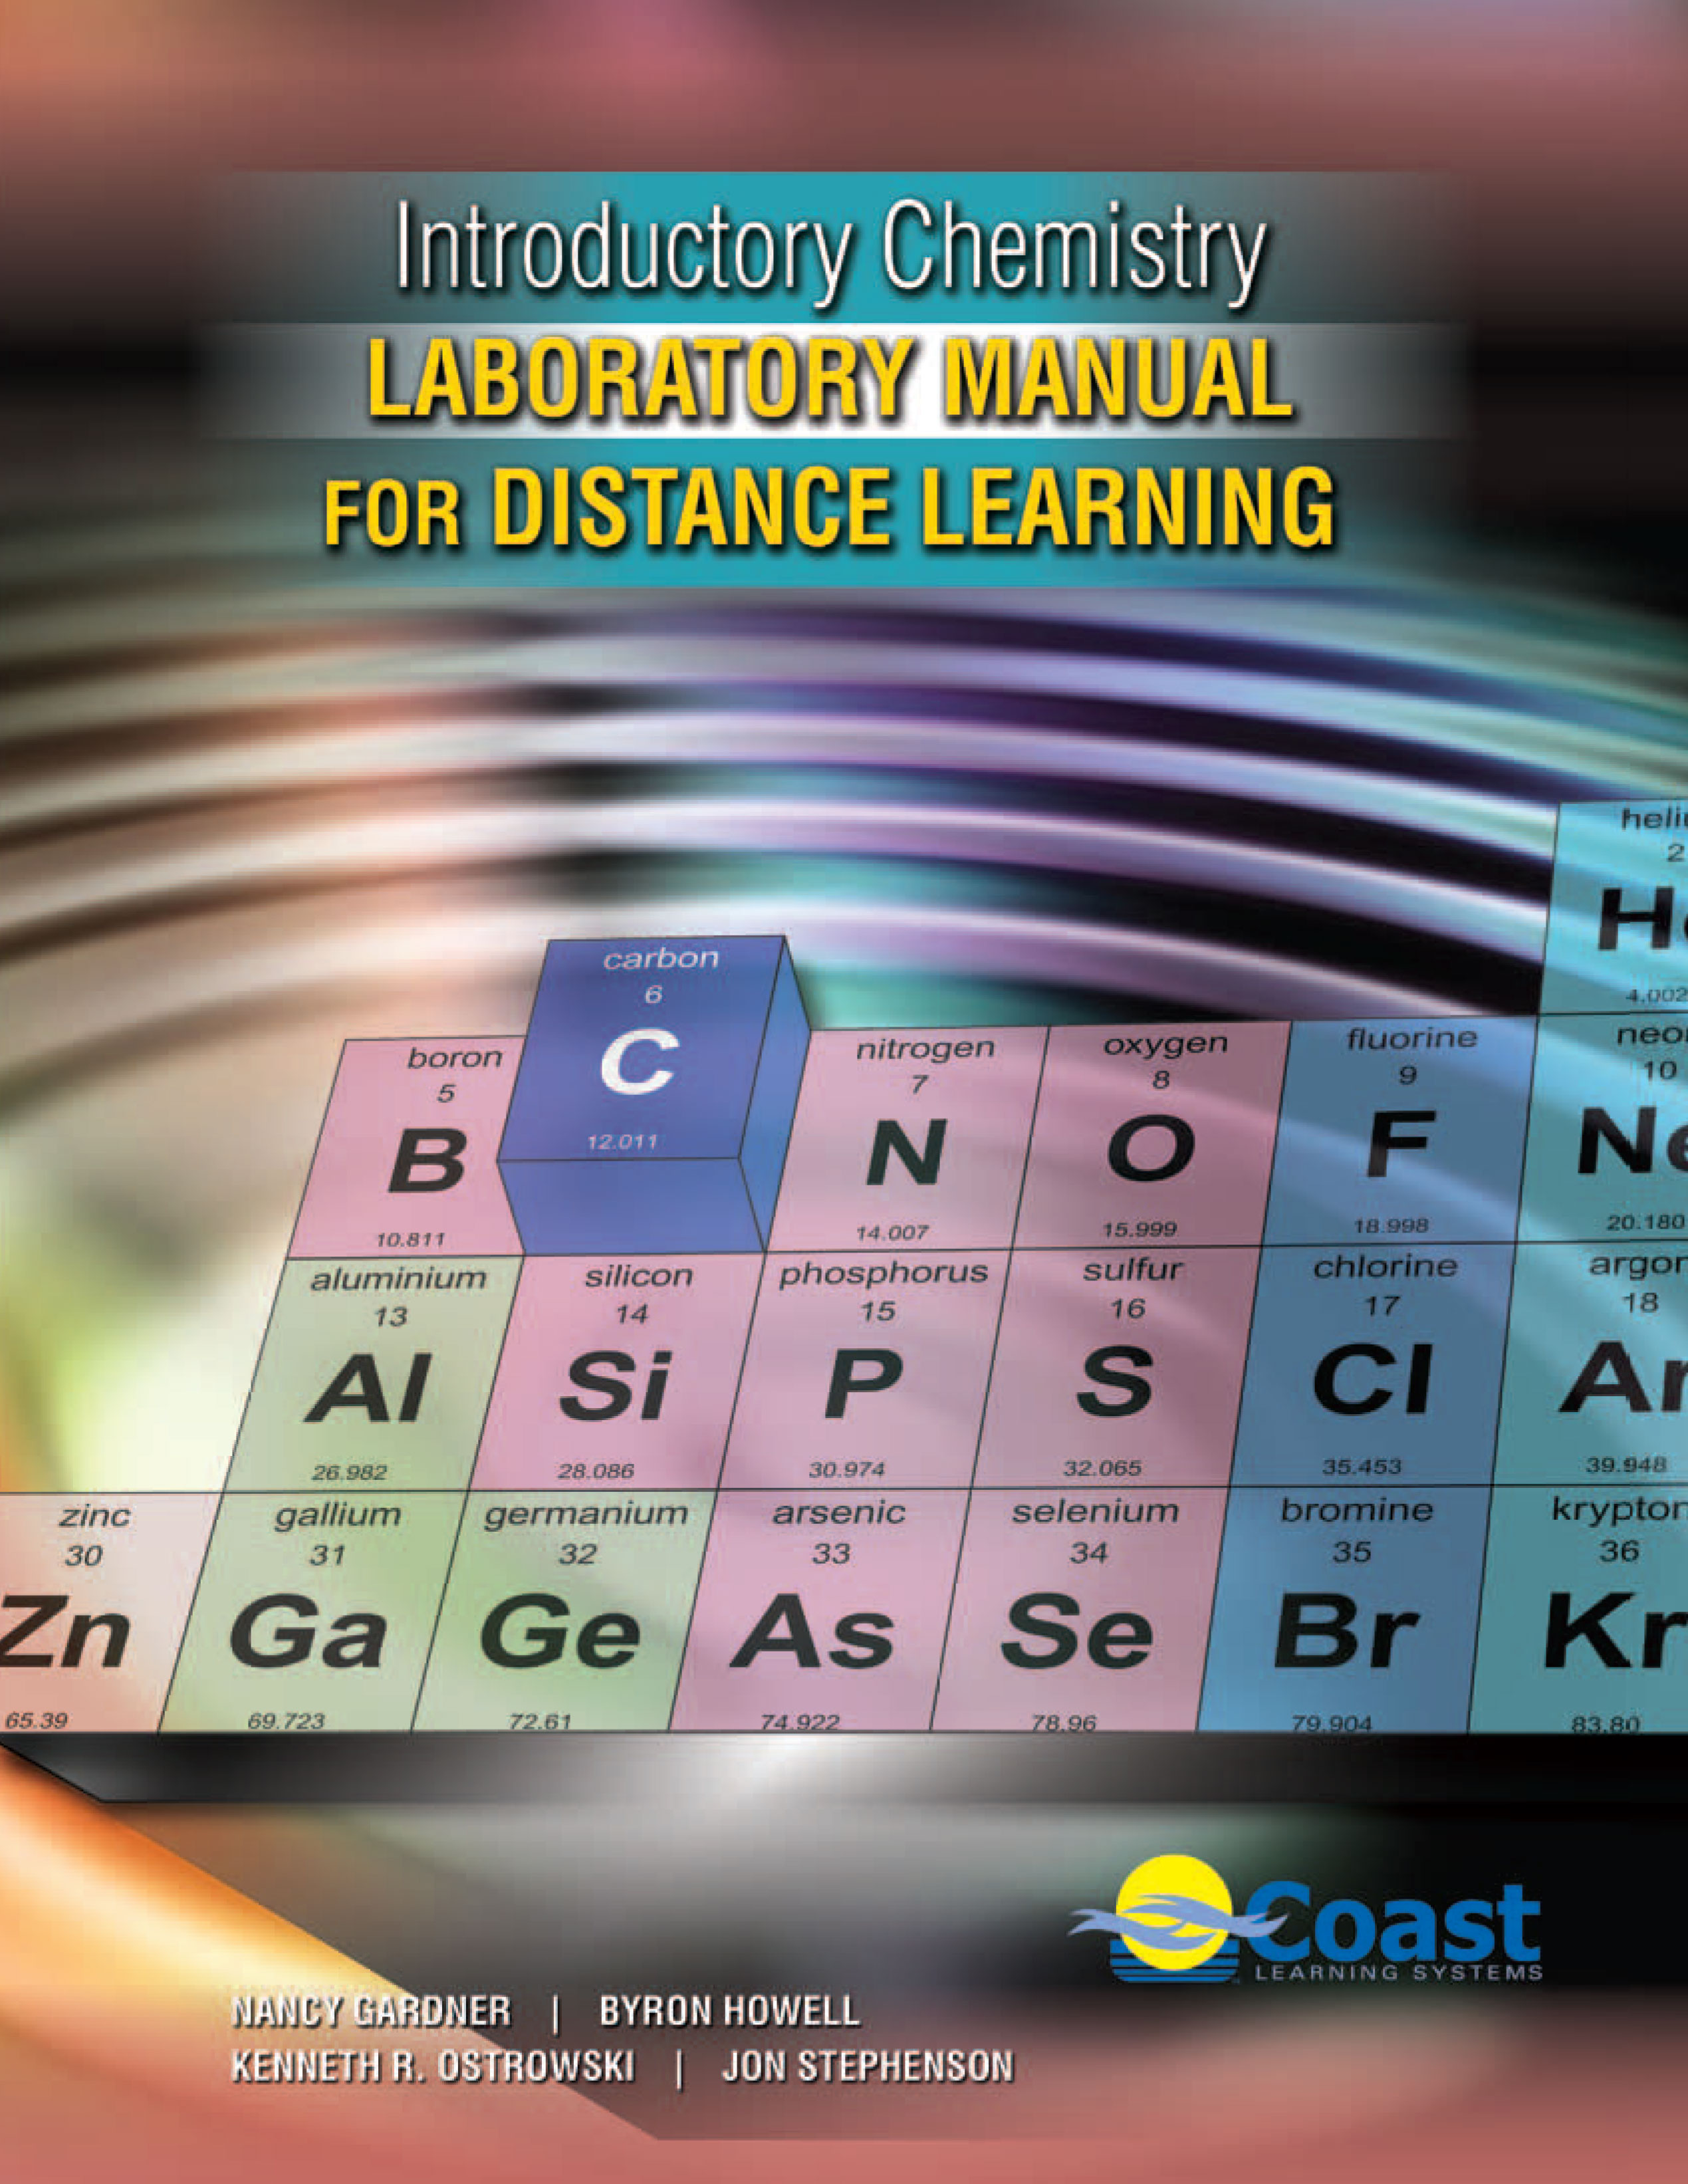 Introductory Chemistry: Laboratory Manual for Distance Learning